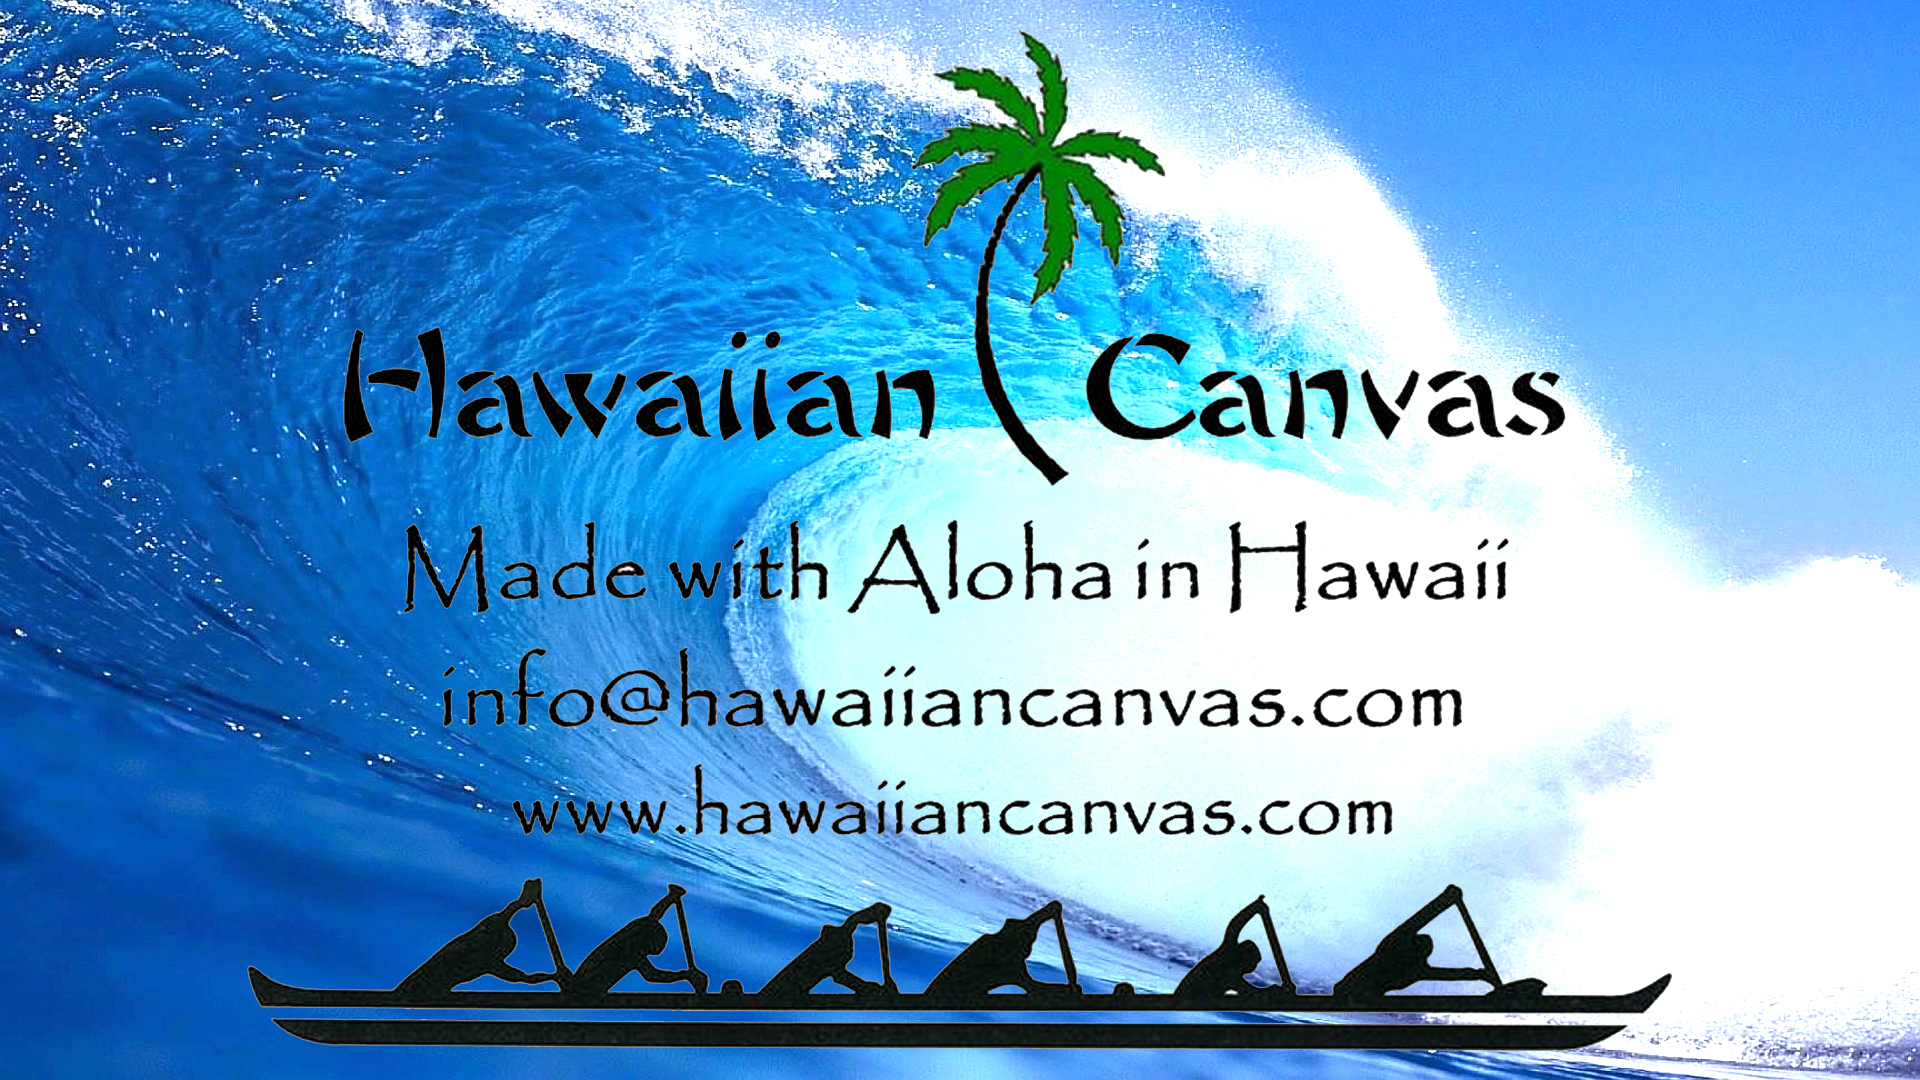 Hawaiian Canvas LLC